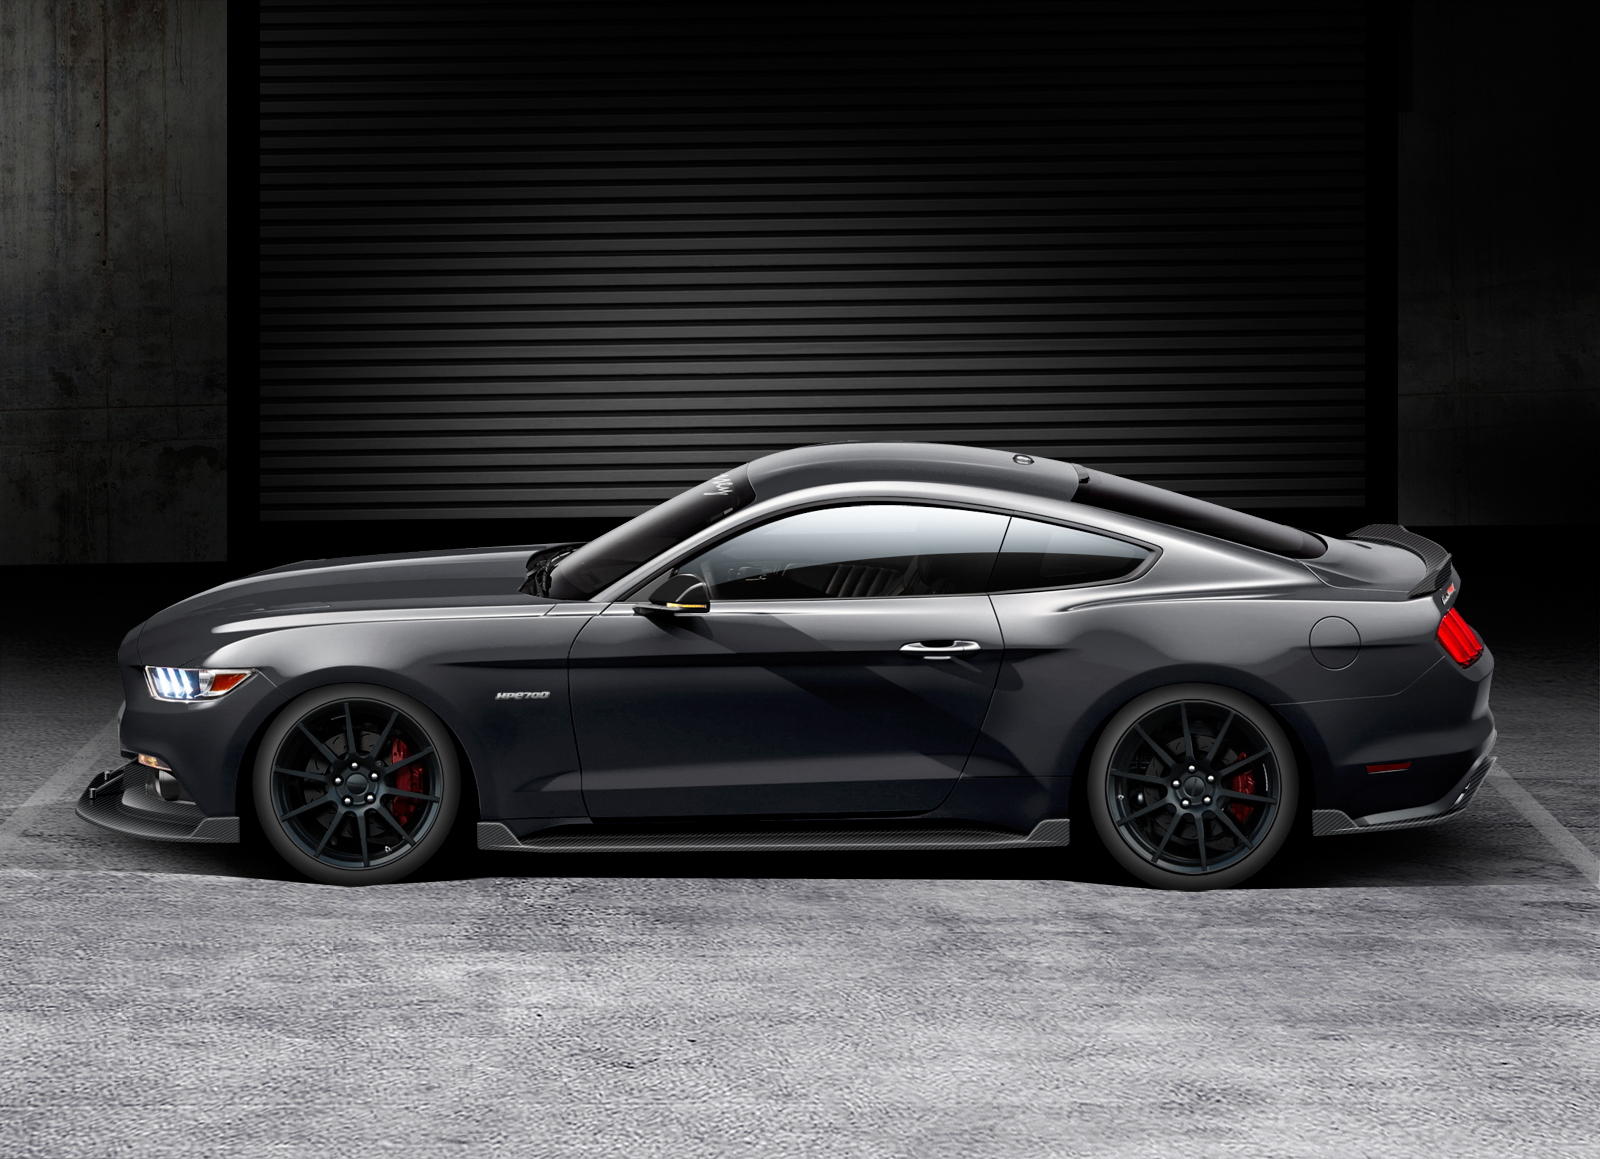 Hennessey Transforms the 2015 Mustang GT into a 717 HP Beast